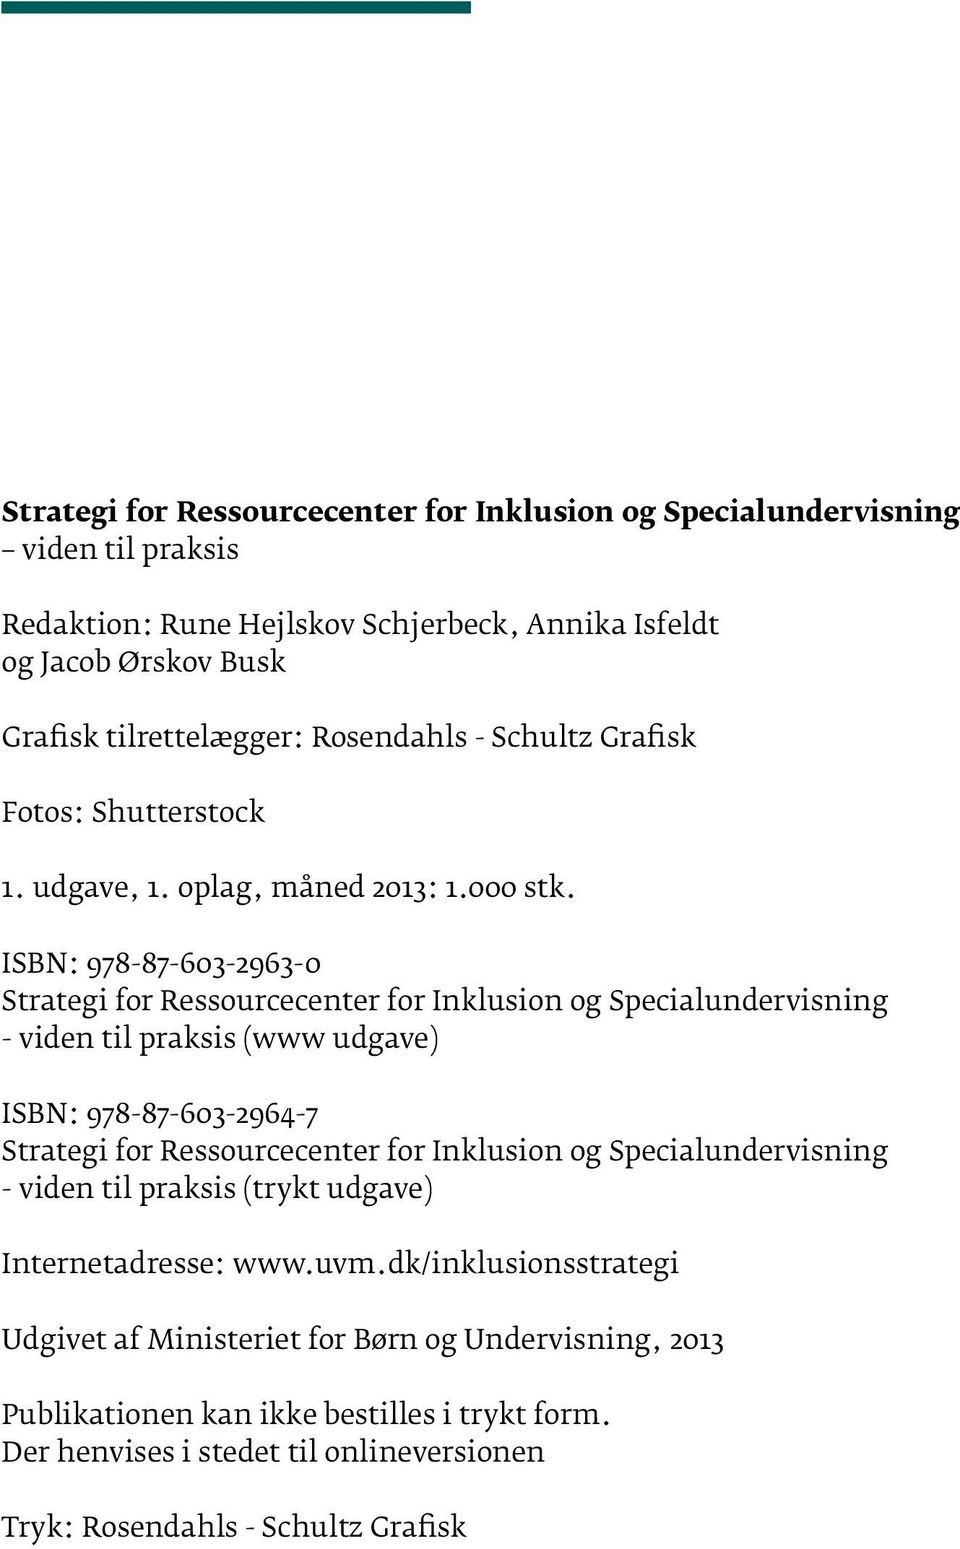 ISBN: 978-87-603-2963-0 Strategi for Ressourcecenter for Inklusion og Specialundervisning - viden til praksis (www udgave) ISBN: 978-87-603-2964-7 Strategi for Ressourcecenter for